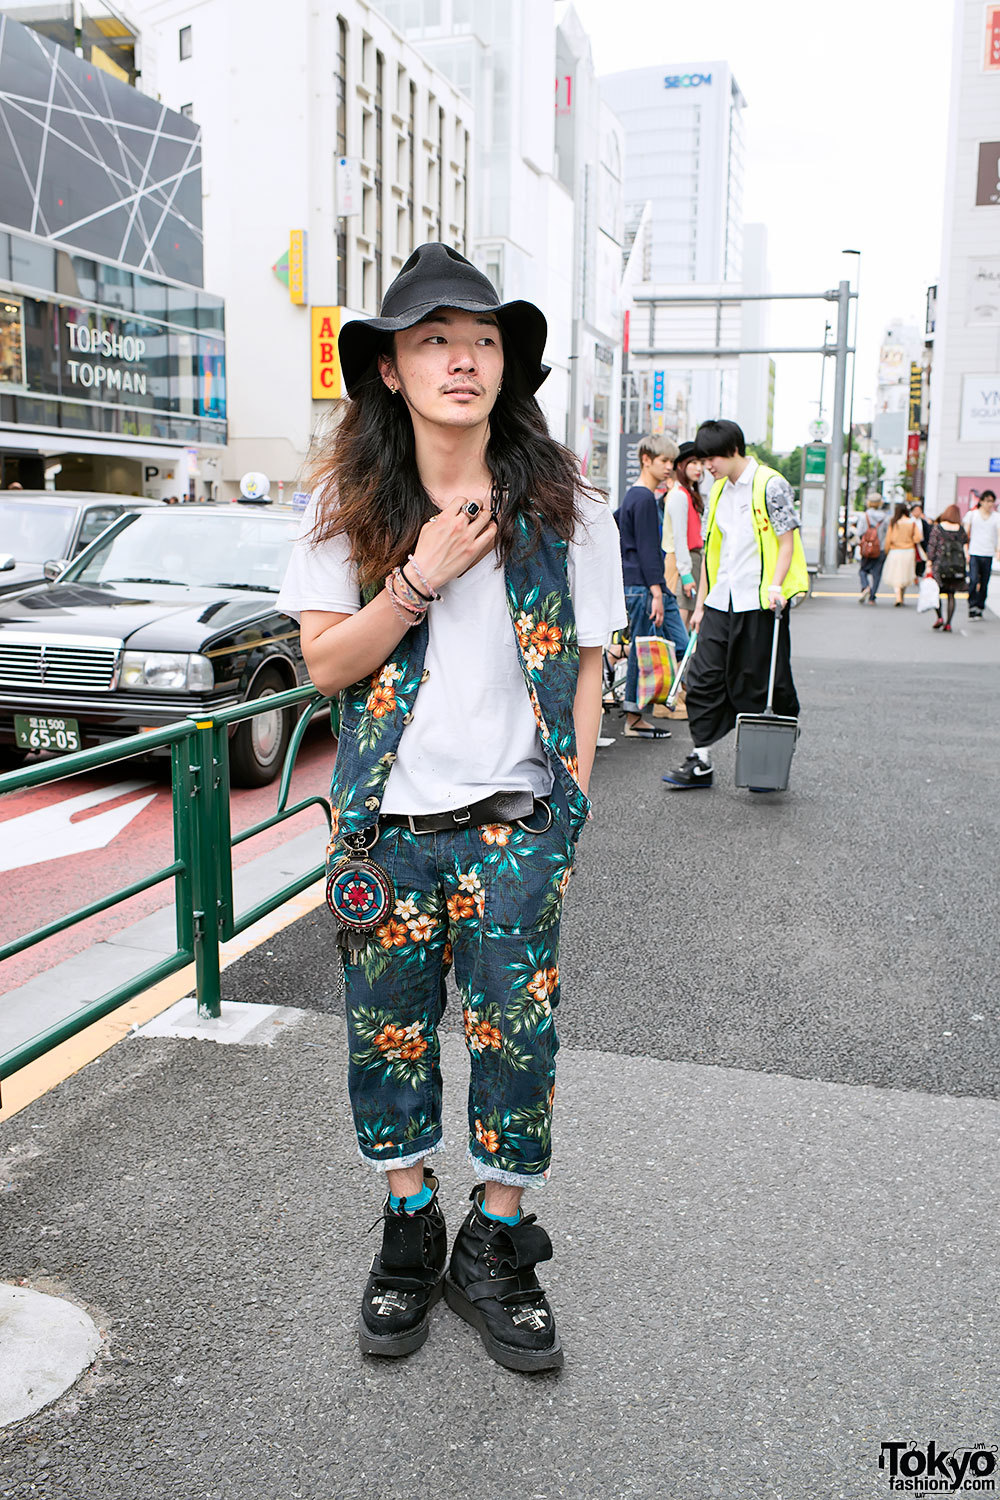 Tokyo is leaps ahead in men's fashion. I don't think that the whole outfit works but I can see past it to the key parts that do. tokyo-fashion:  Well-known Harajuku street snap personality Li Lium w/ Blackmeans & Labrat x George Cox creeper boots.